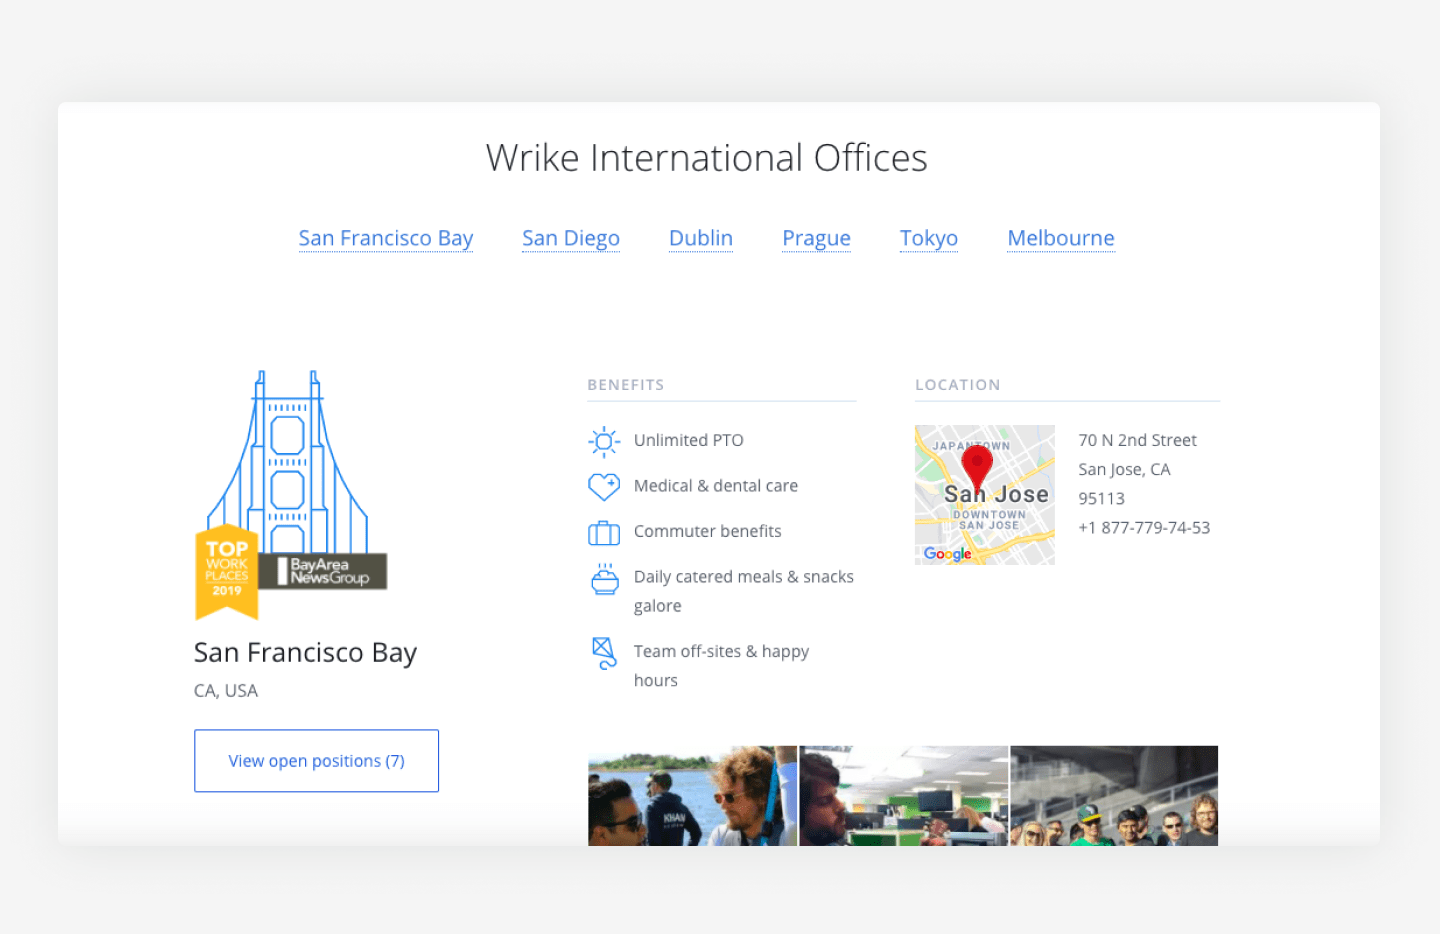 Wrike's website career page example of their office locations